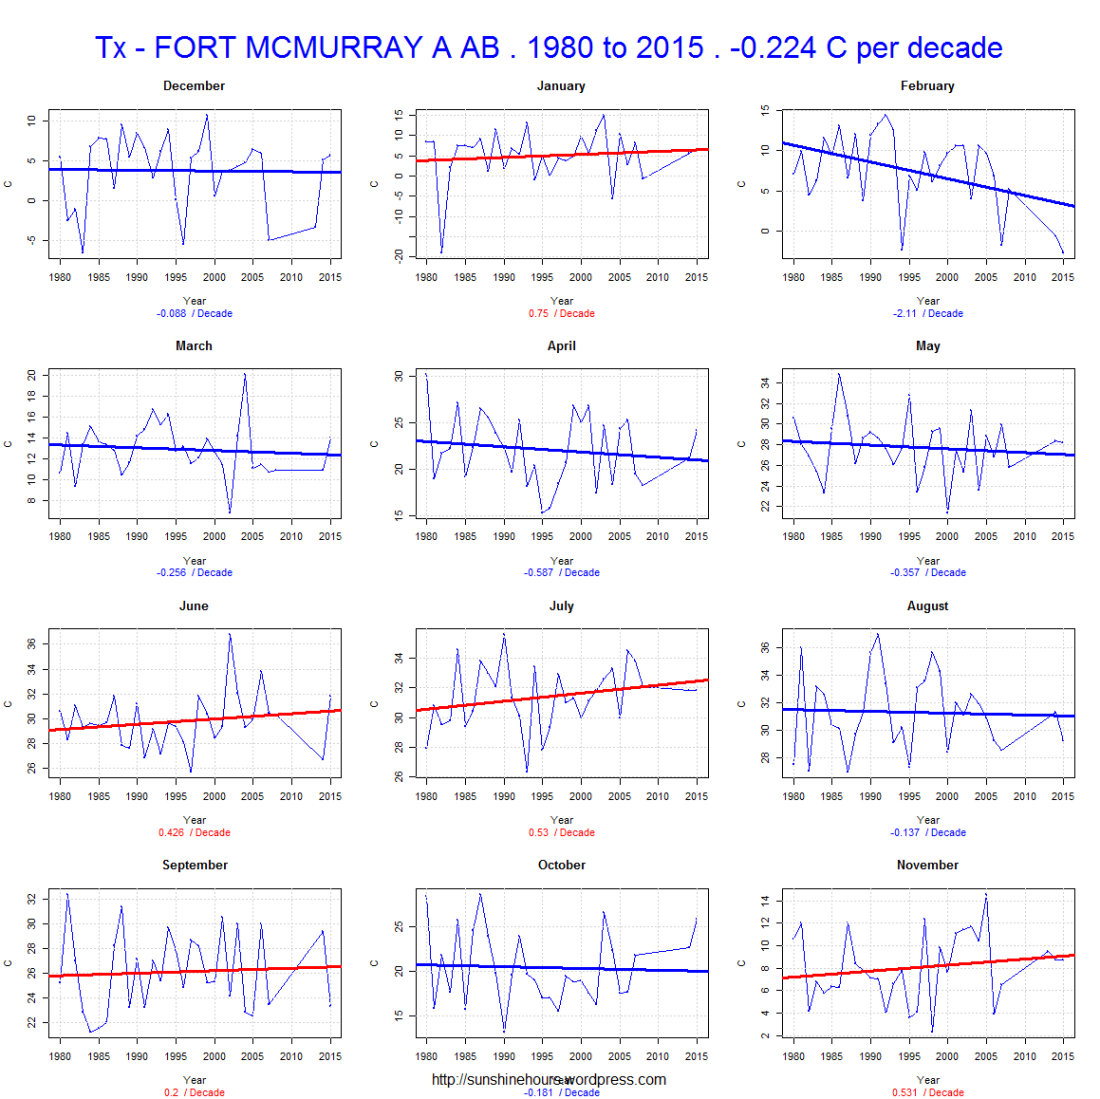 Tx - FORT MCMURRAY A AB . 1980 to 2015 . -0.224 C per decade